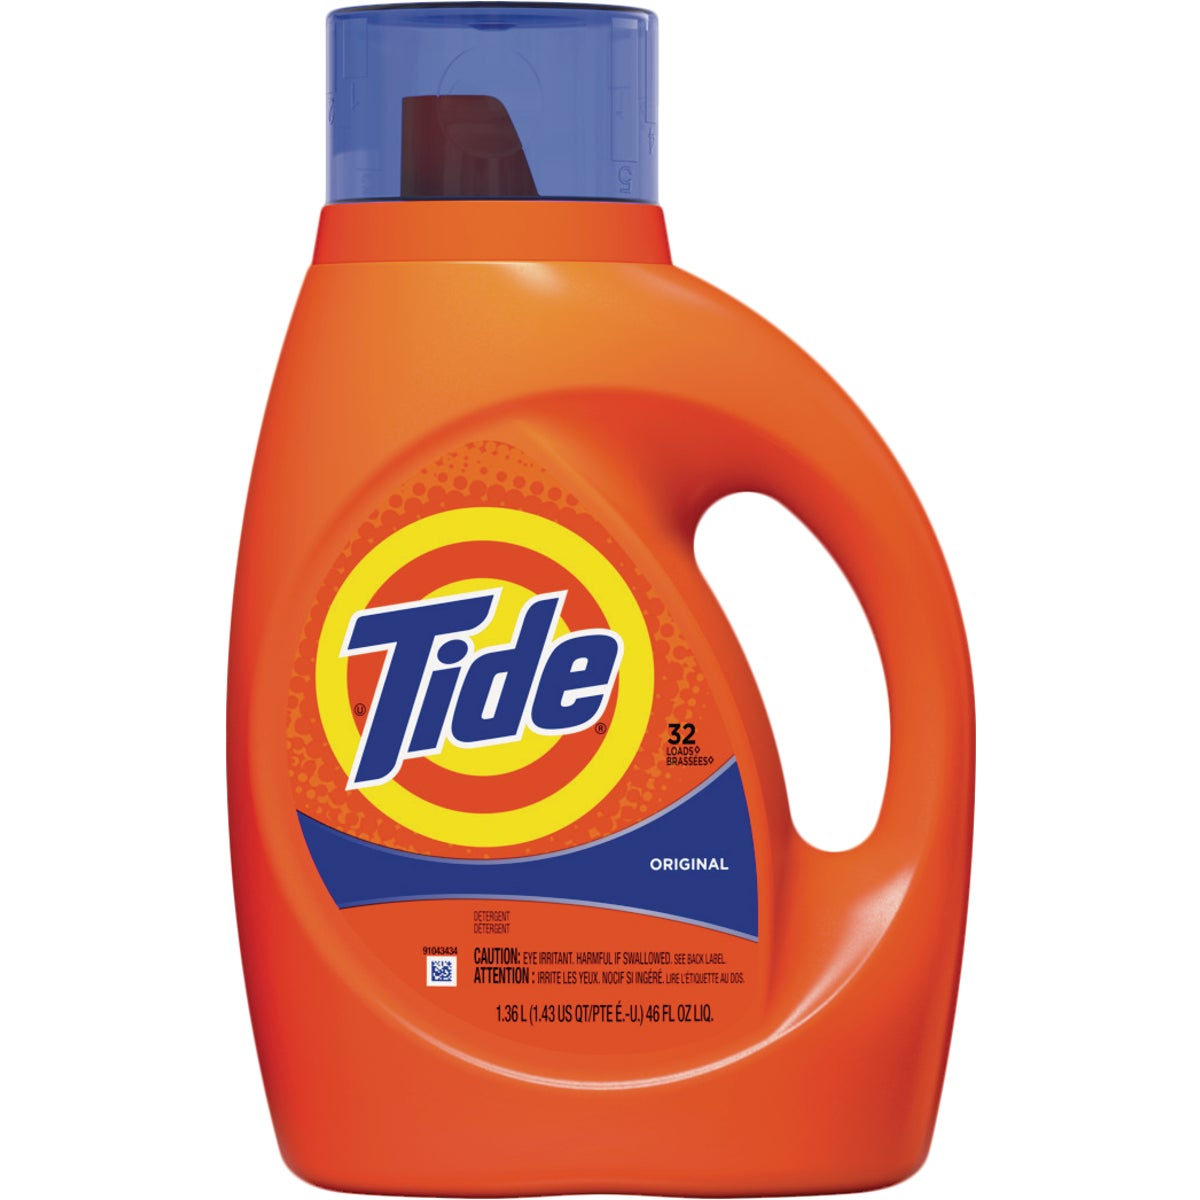 32 LOAD 50OZ LIQ TIDE - 13878 by Procter & Gamble